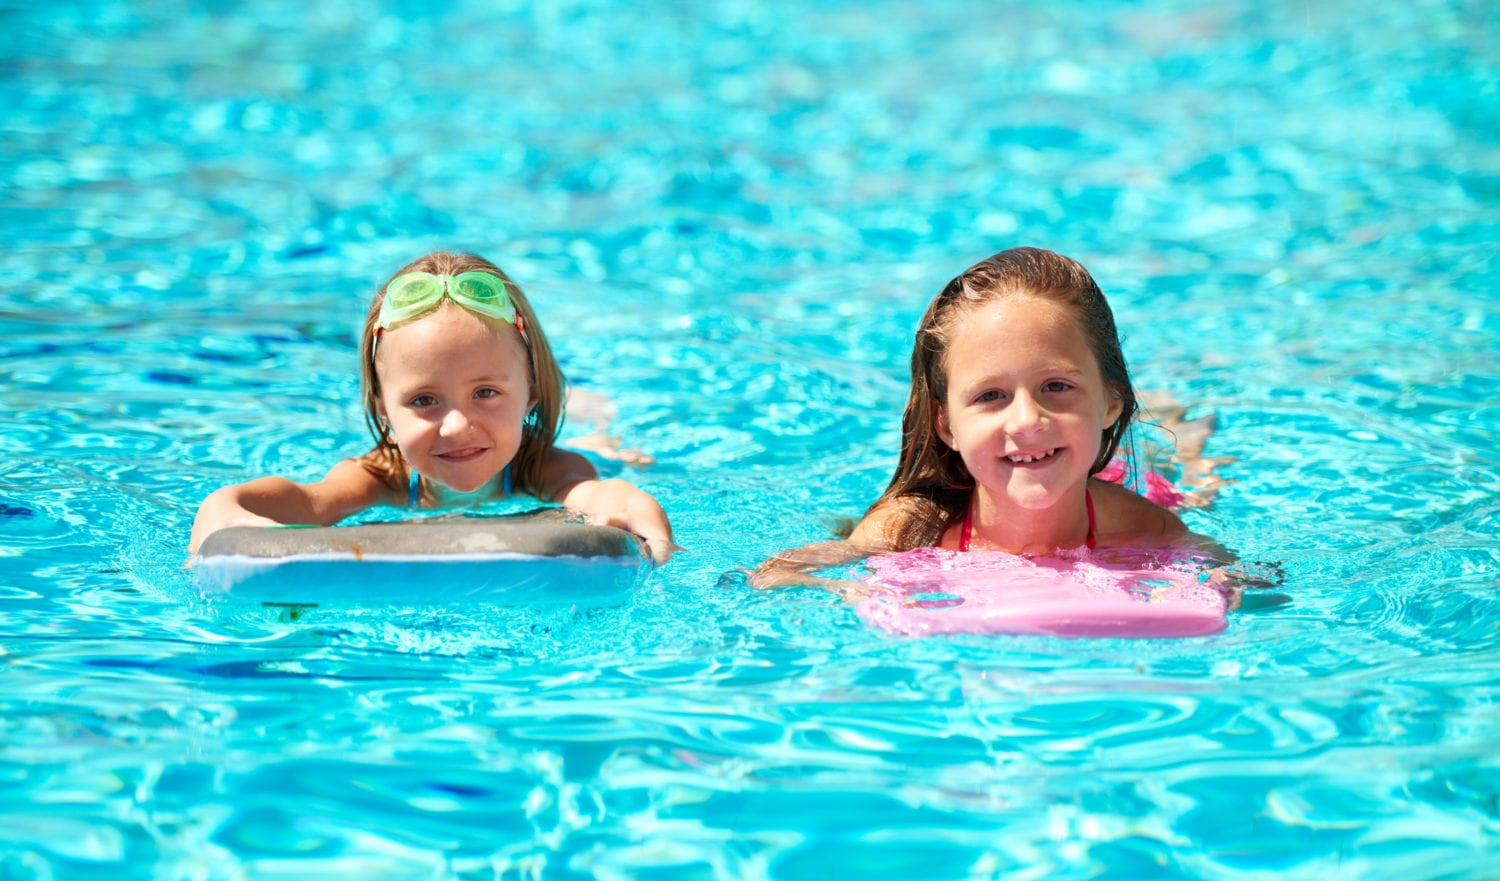 Two little girls using pool inflatables while swimminghttp://195.154.178.81/DATA/i_collage/pi/shoots/783415.jpg